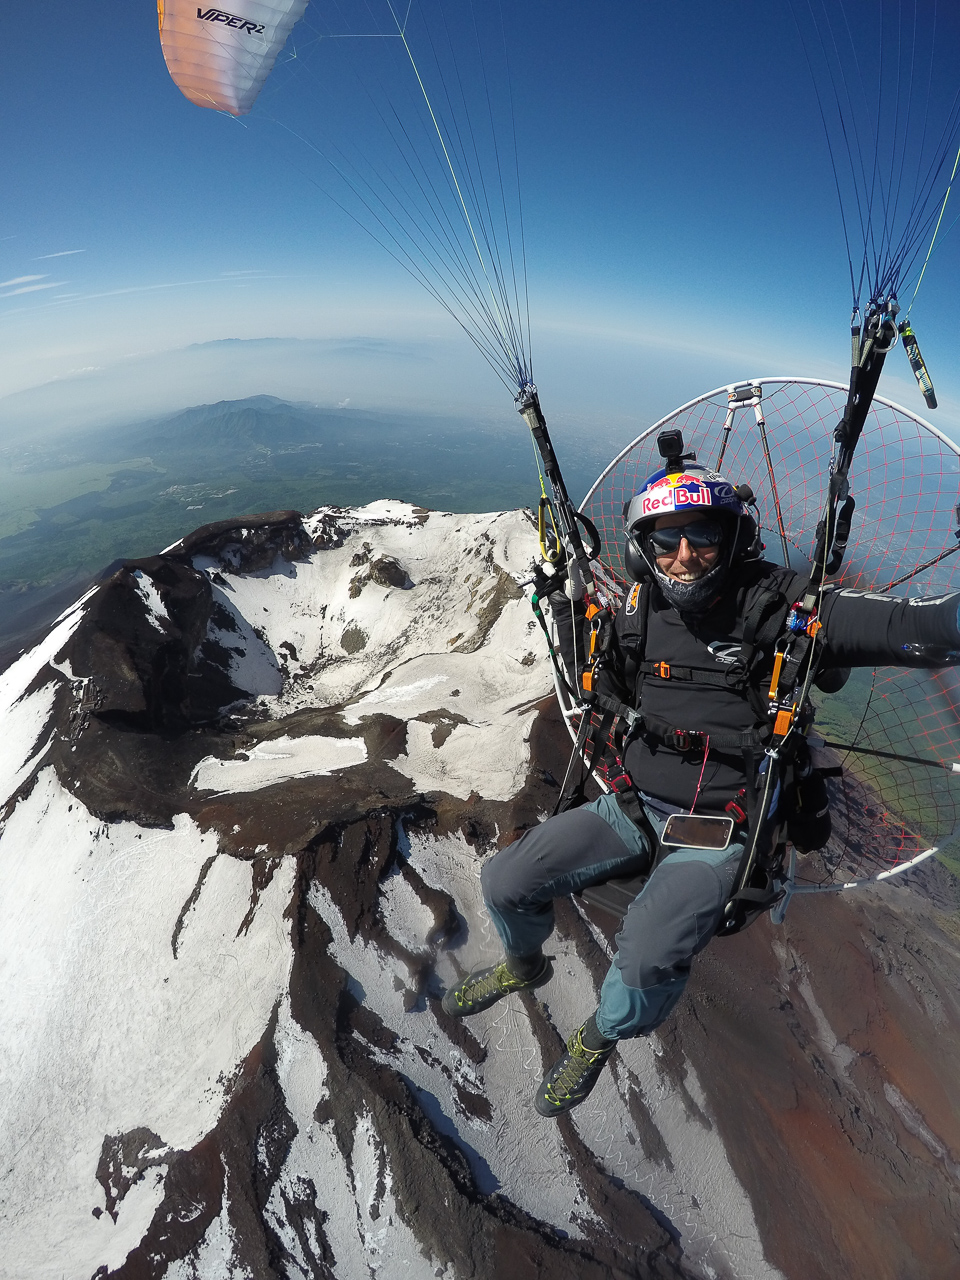 Ozone Paragliders  Prices Information and Specifications